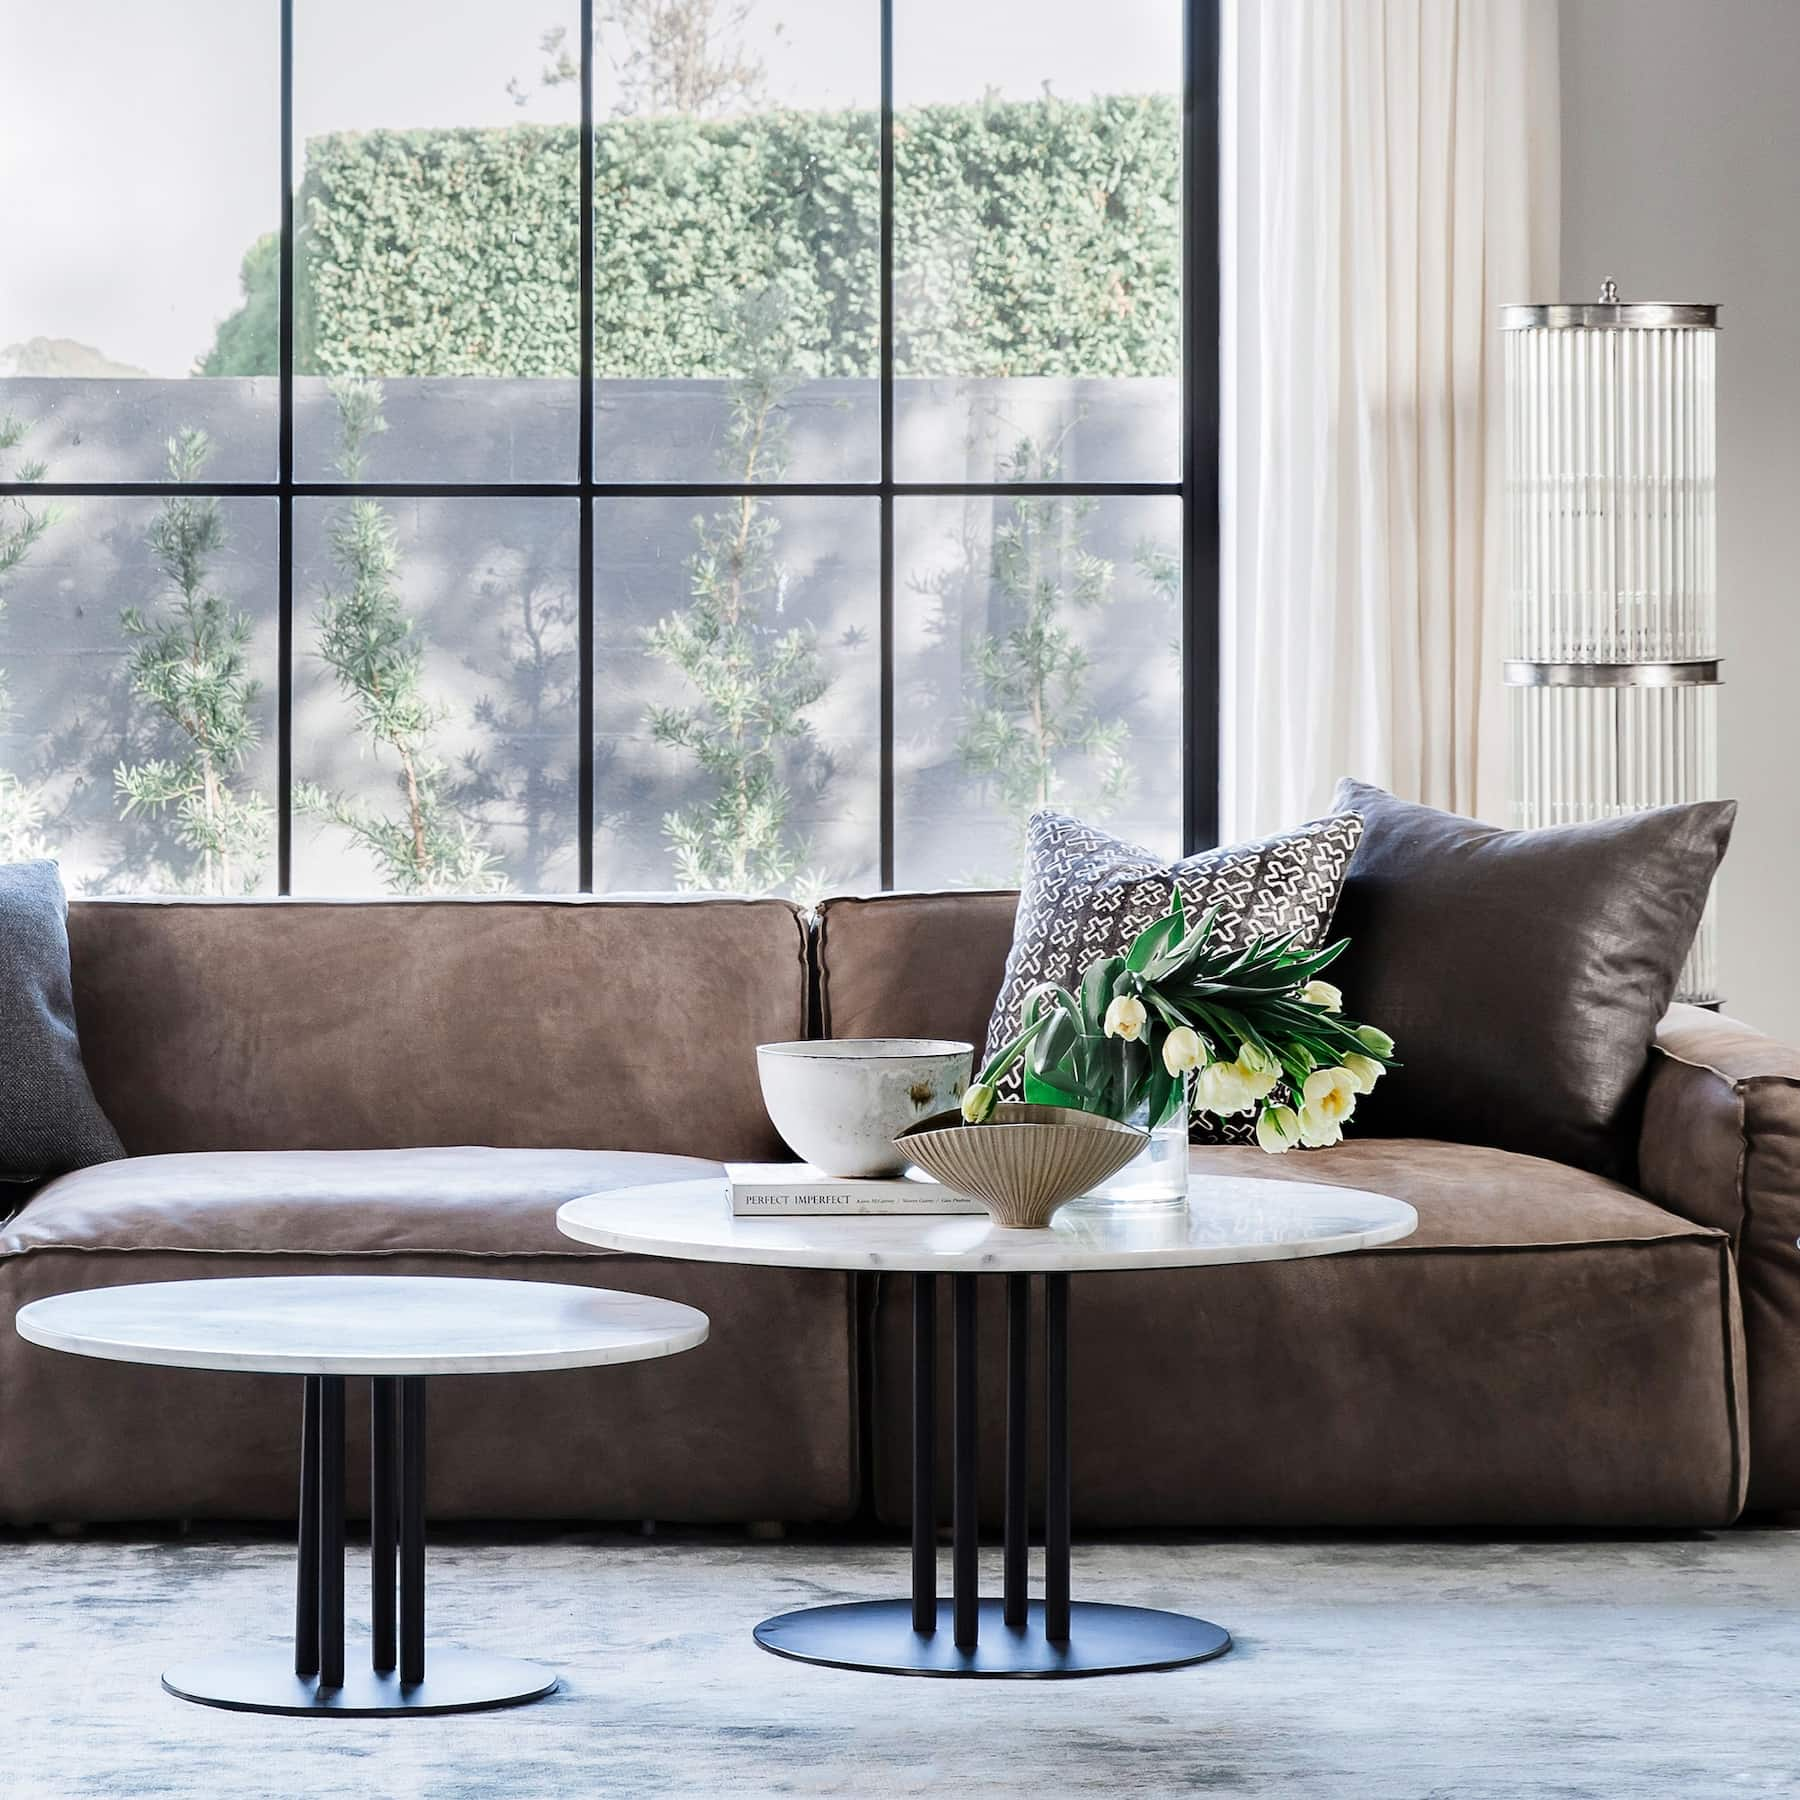 brown leather sofa with white round marble coffee table styling with flowers